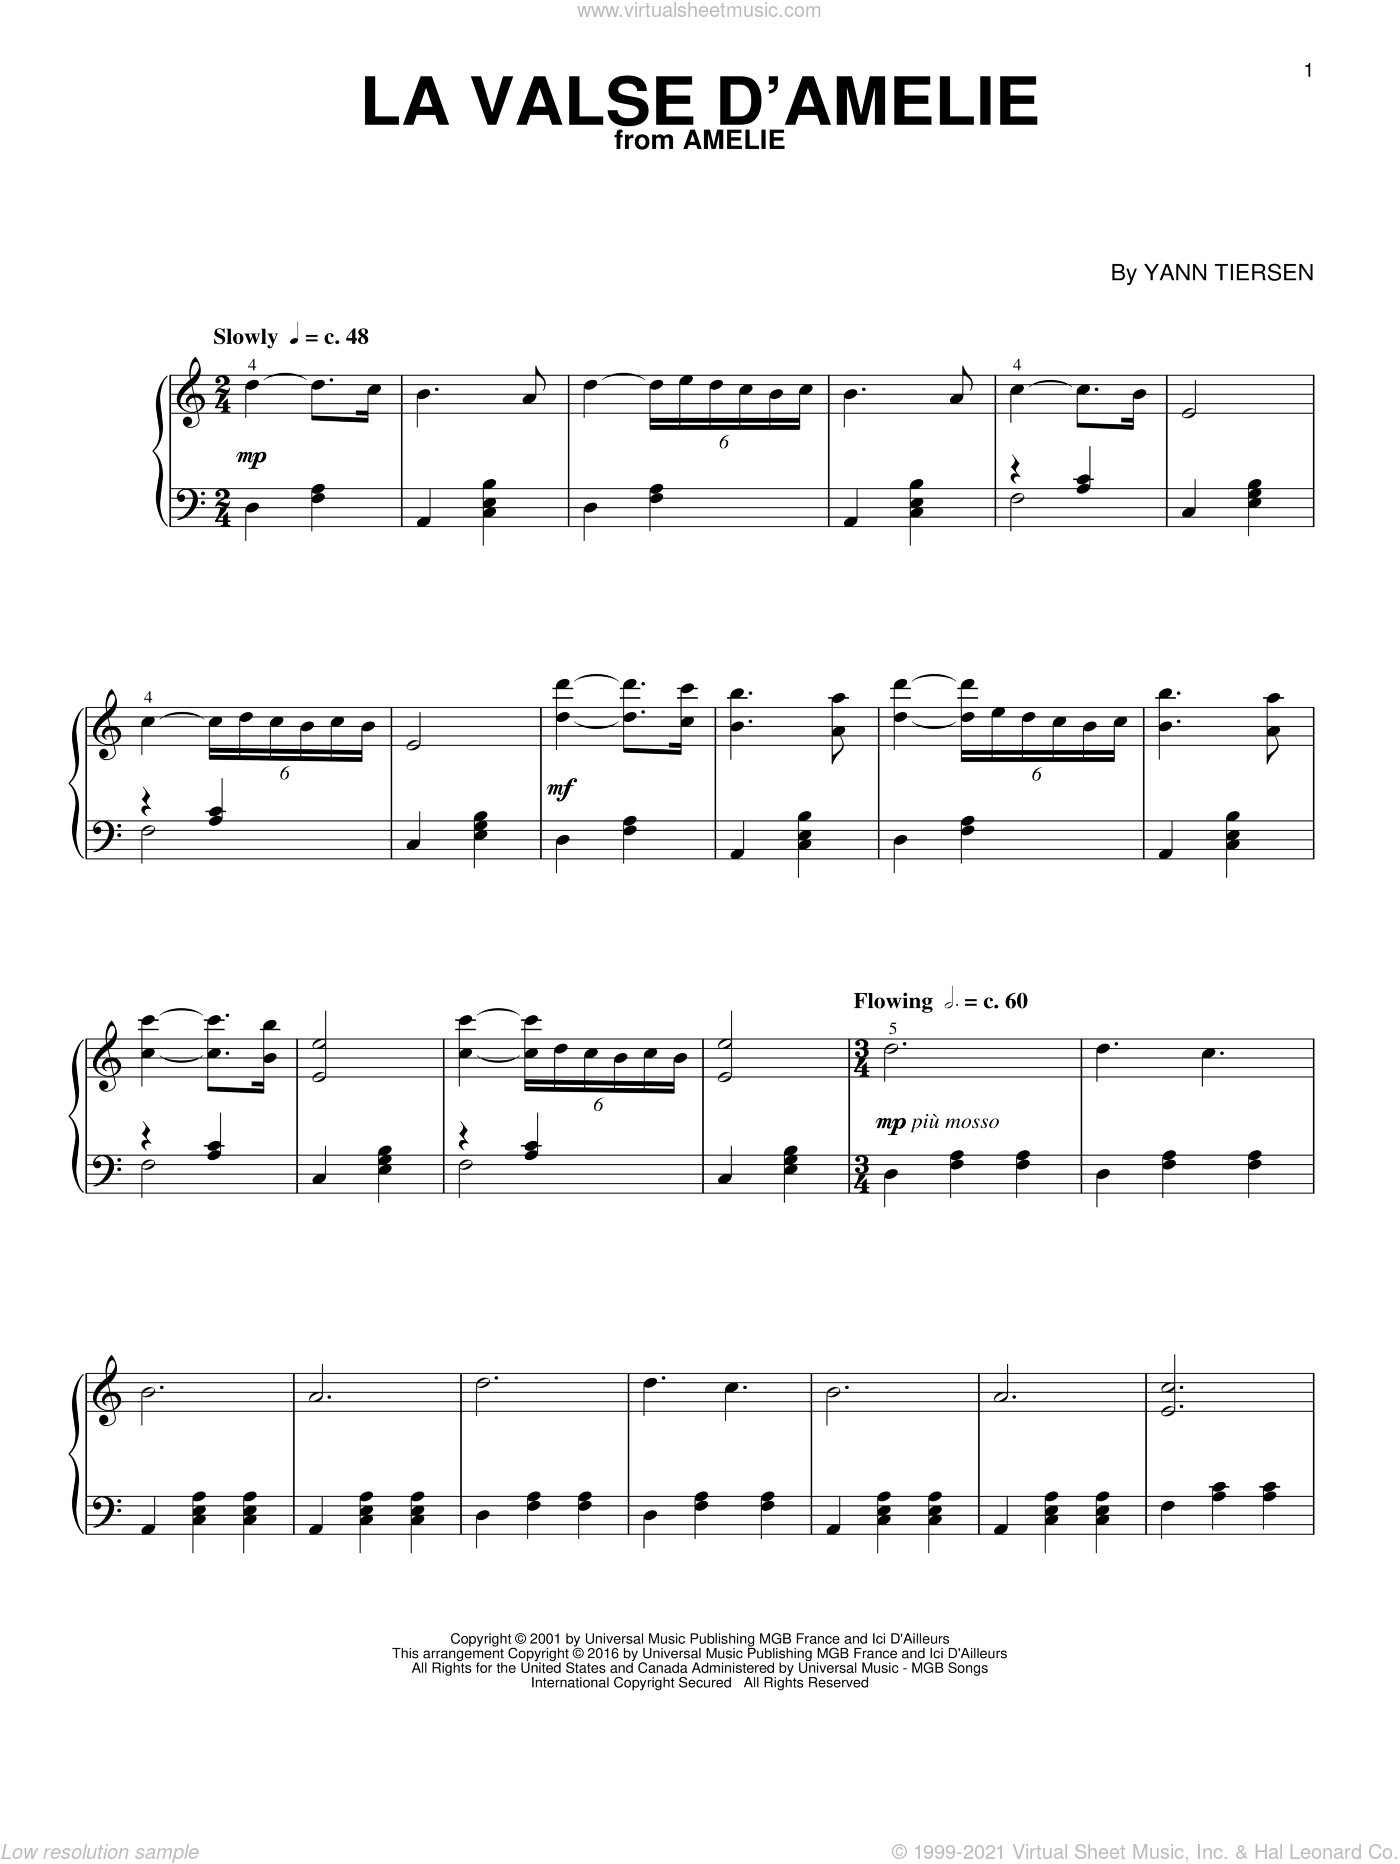 La Valse D'Amelie sheet music for piano solo by Yann Tiersen. Score Image Preview.